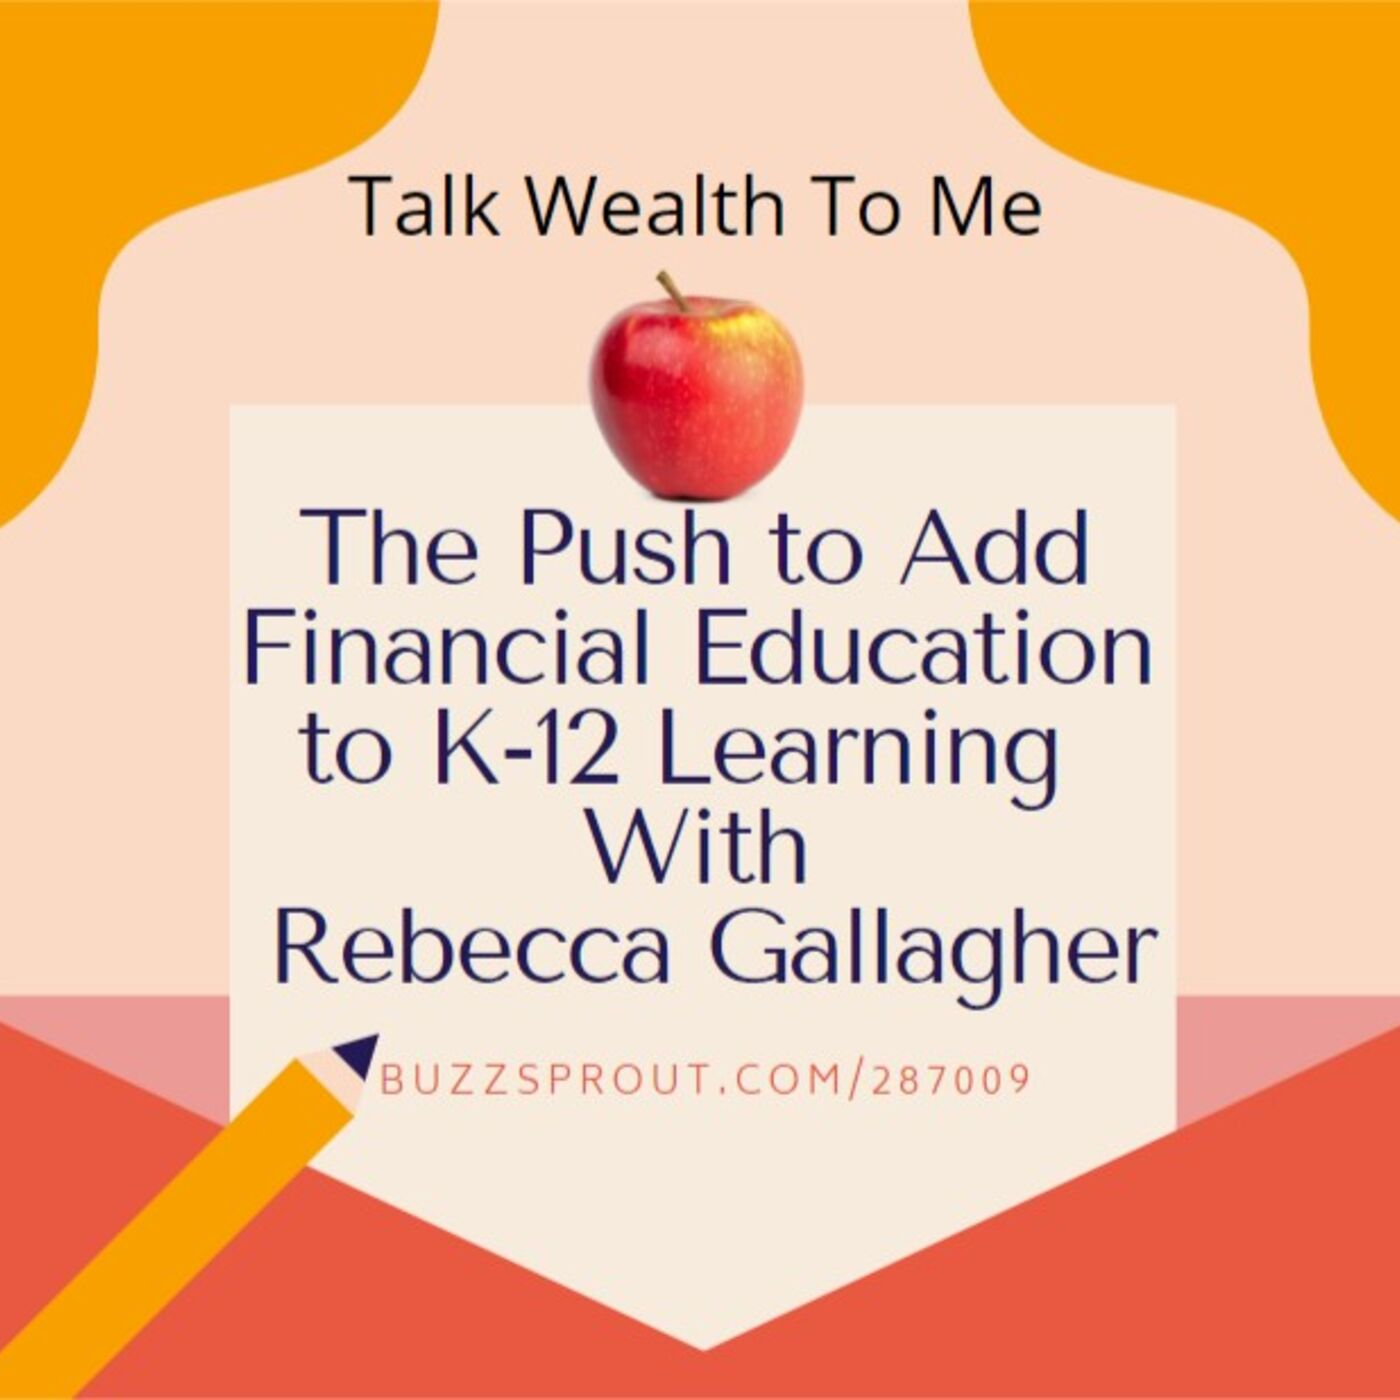 #072 The Push to Add Financial Education to K-12 Learning With Rebecca Gallagher